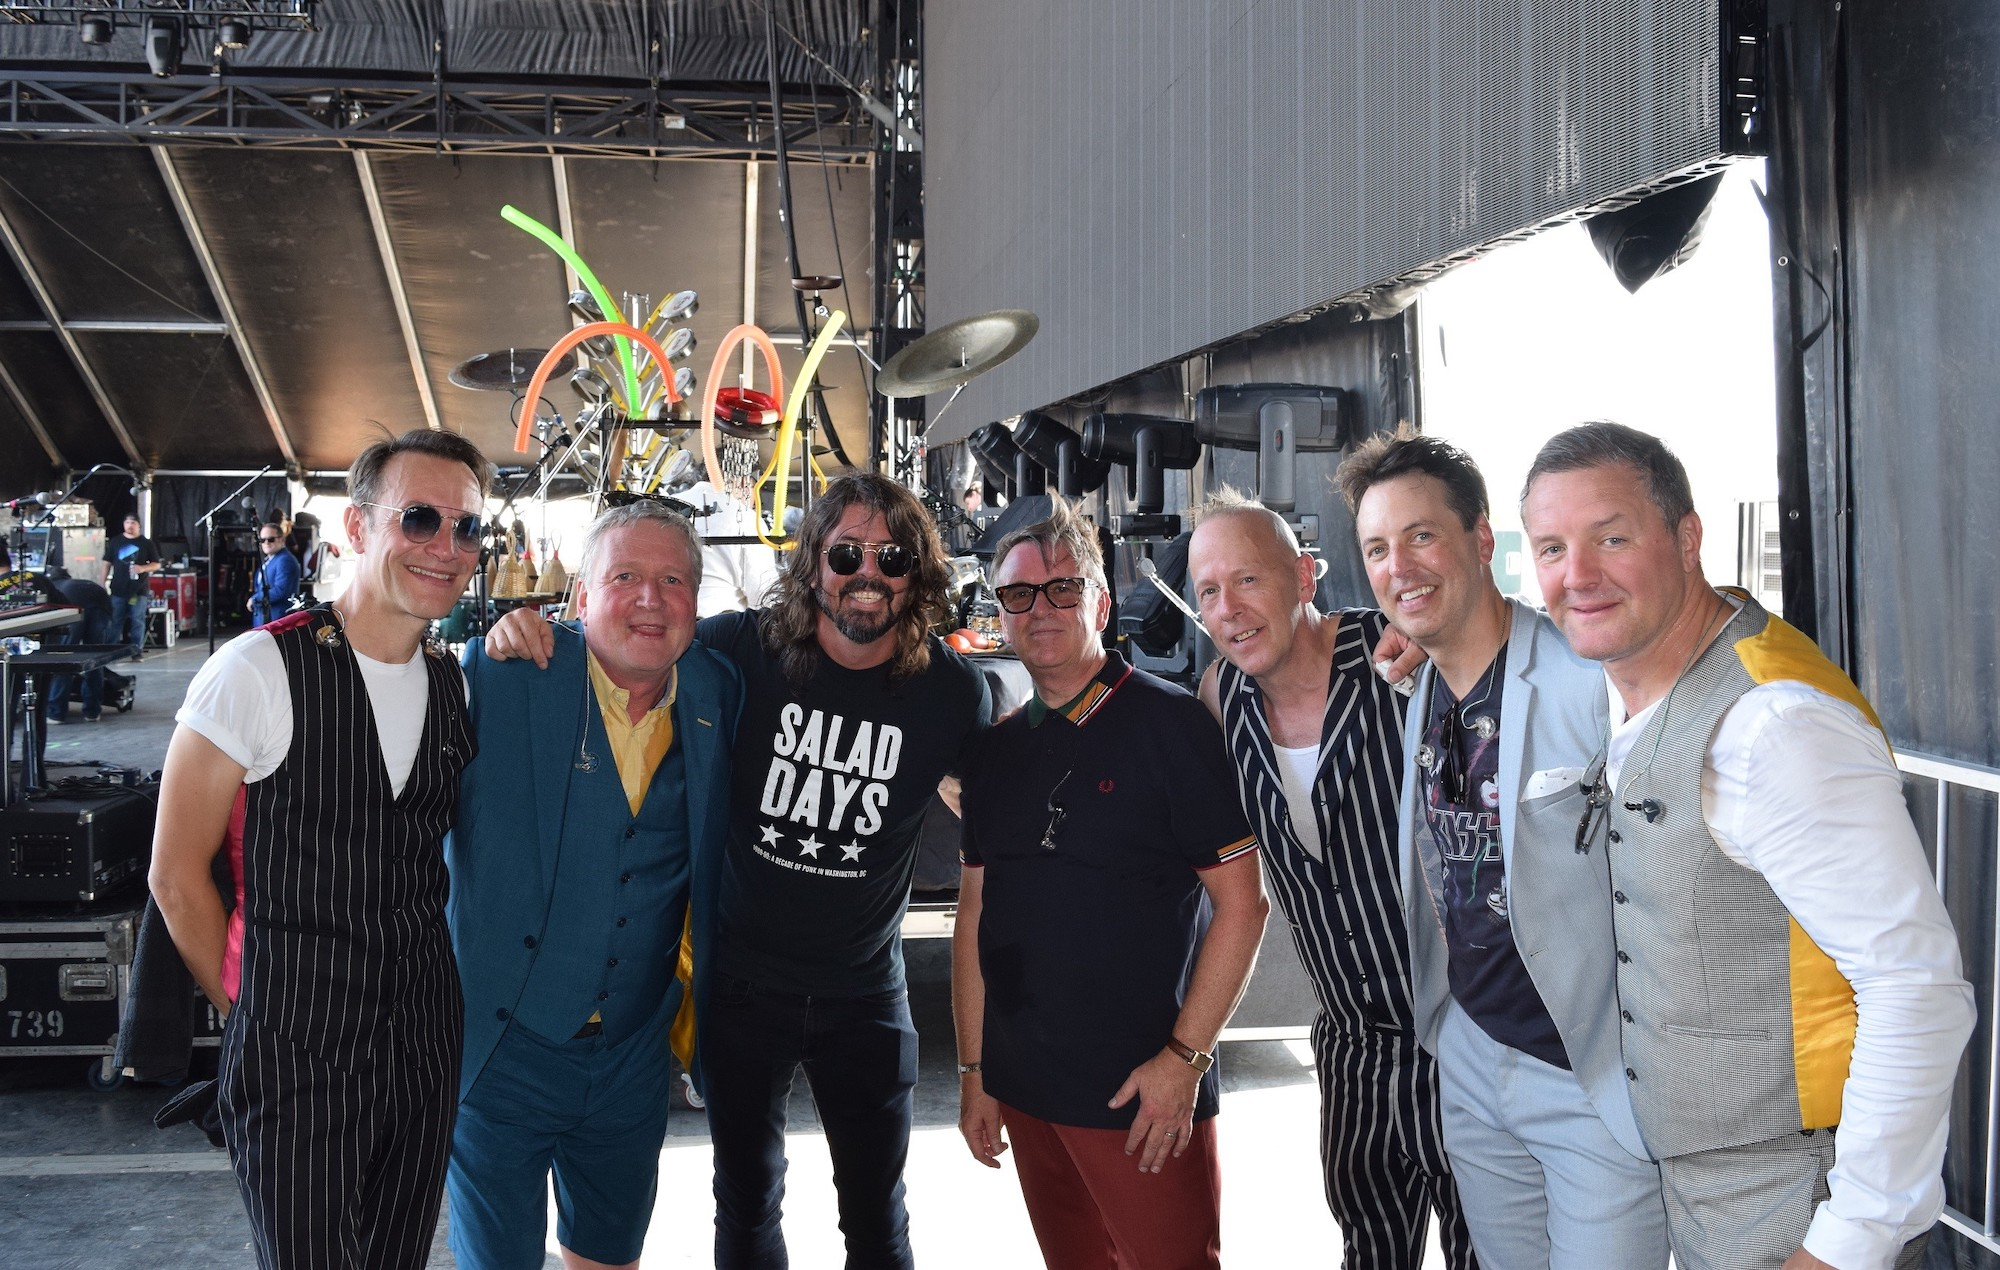 Watch Dave Grohl make surprise appearance with Squeeze at Kentucky festival